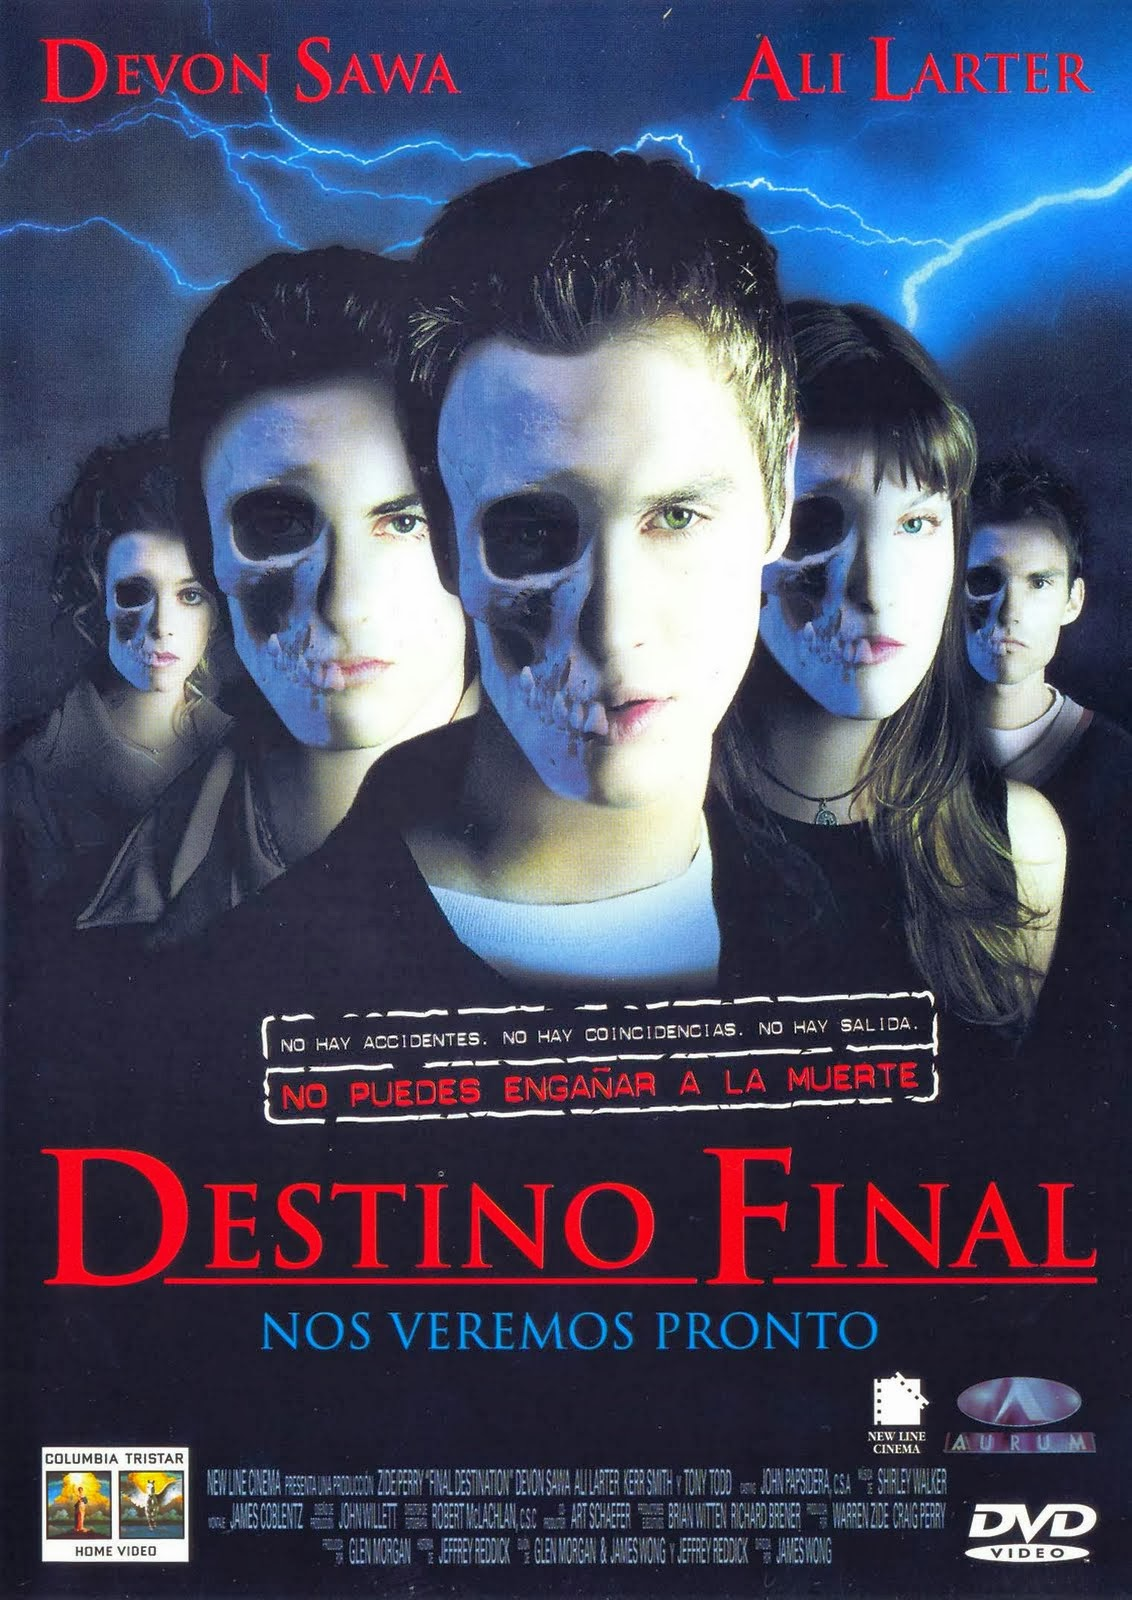 'Superstition: Final Chance', lo nuevo del creador de 'Destino Final'